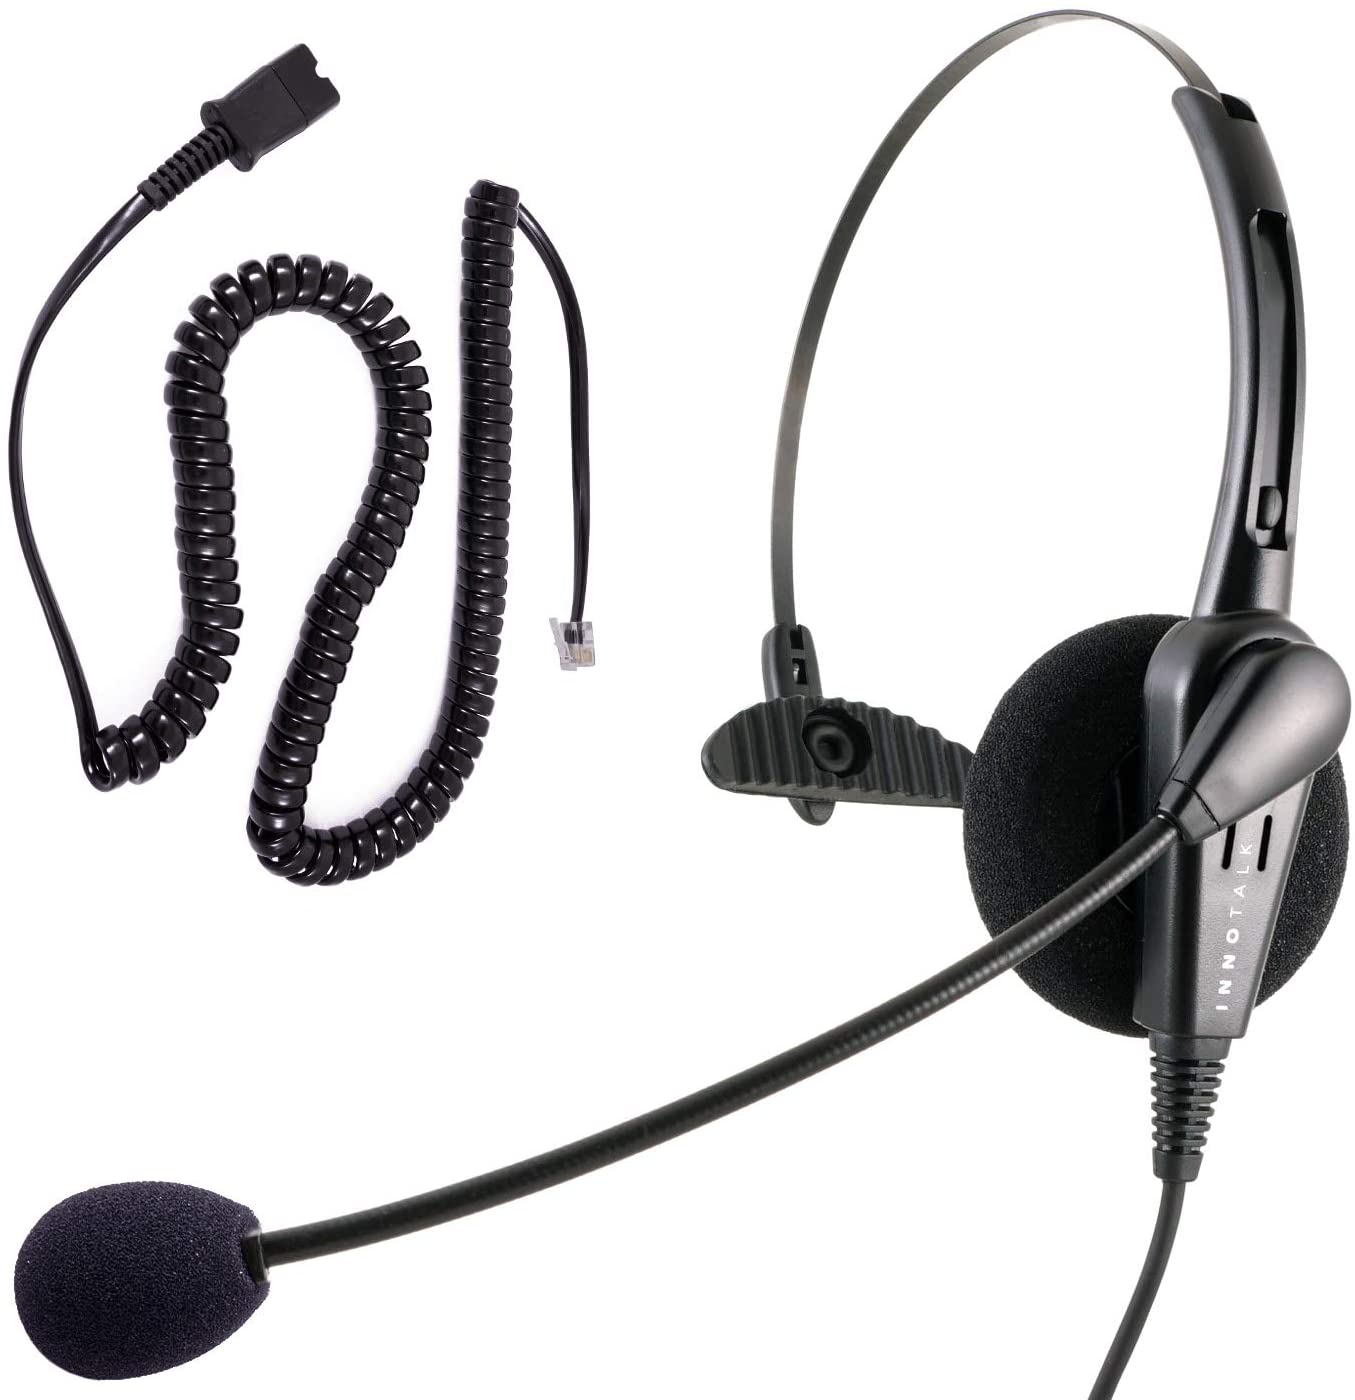 Telephone Headset Headphone Compatible with Cisco 8811 8841 8851 8861 8865 8941 8945 8961 Phone - Call Center Noise Cancel Mic Compatible with Plantronics QD